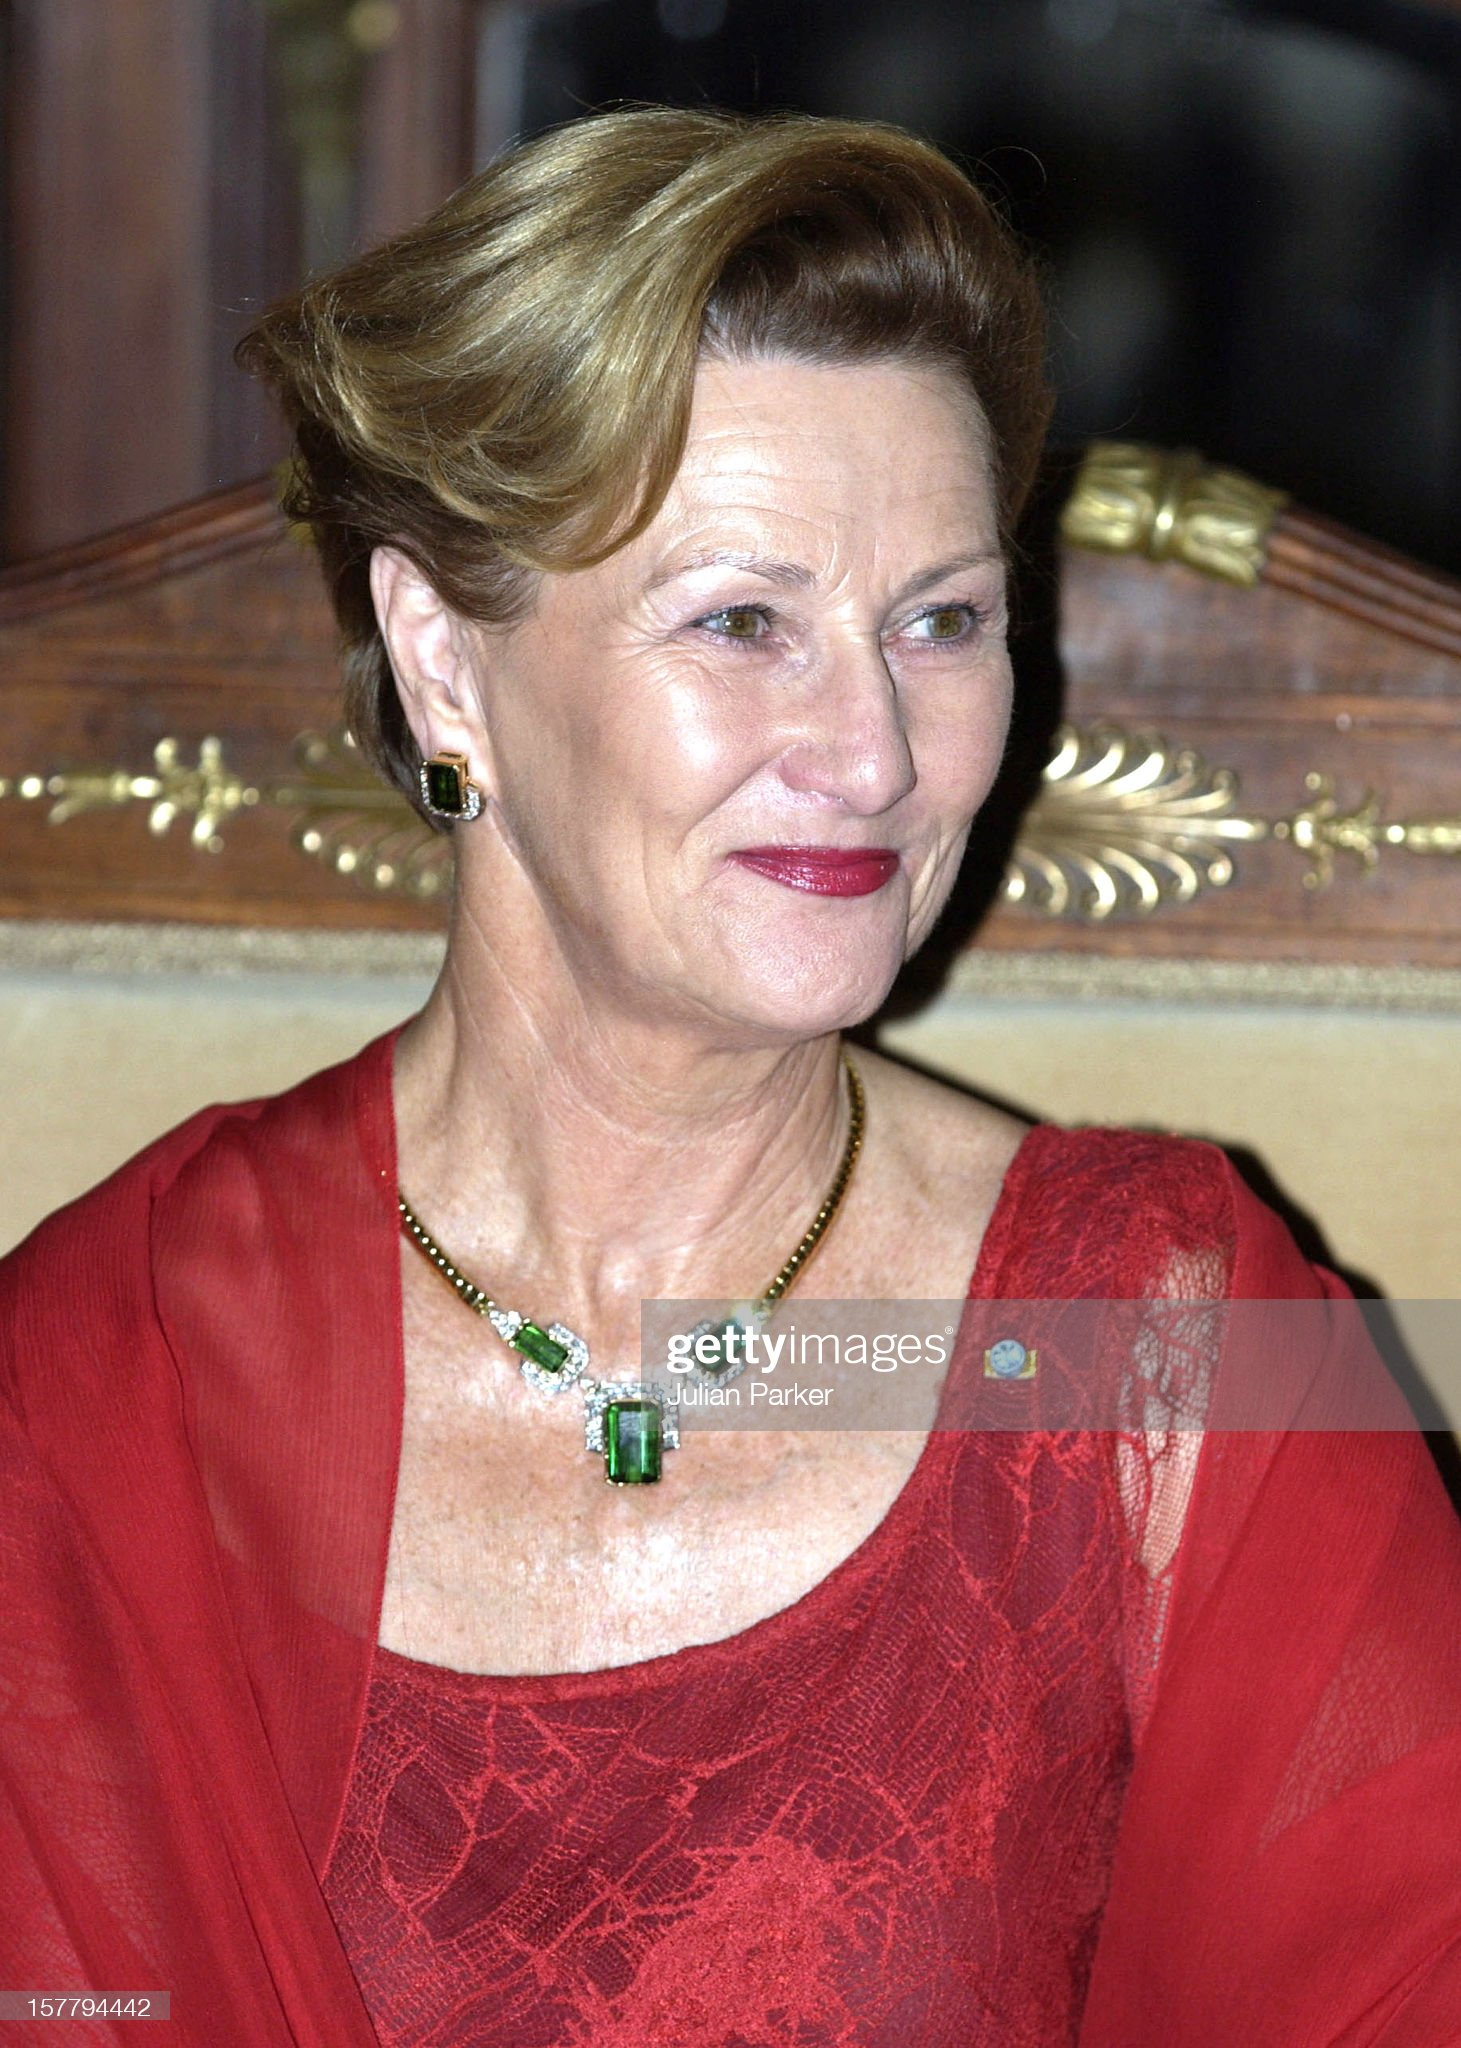 Norwegian State Visit To Brazil : News Photo